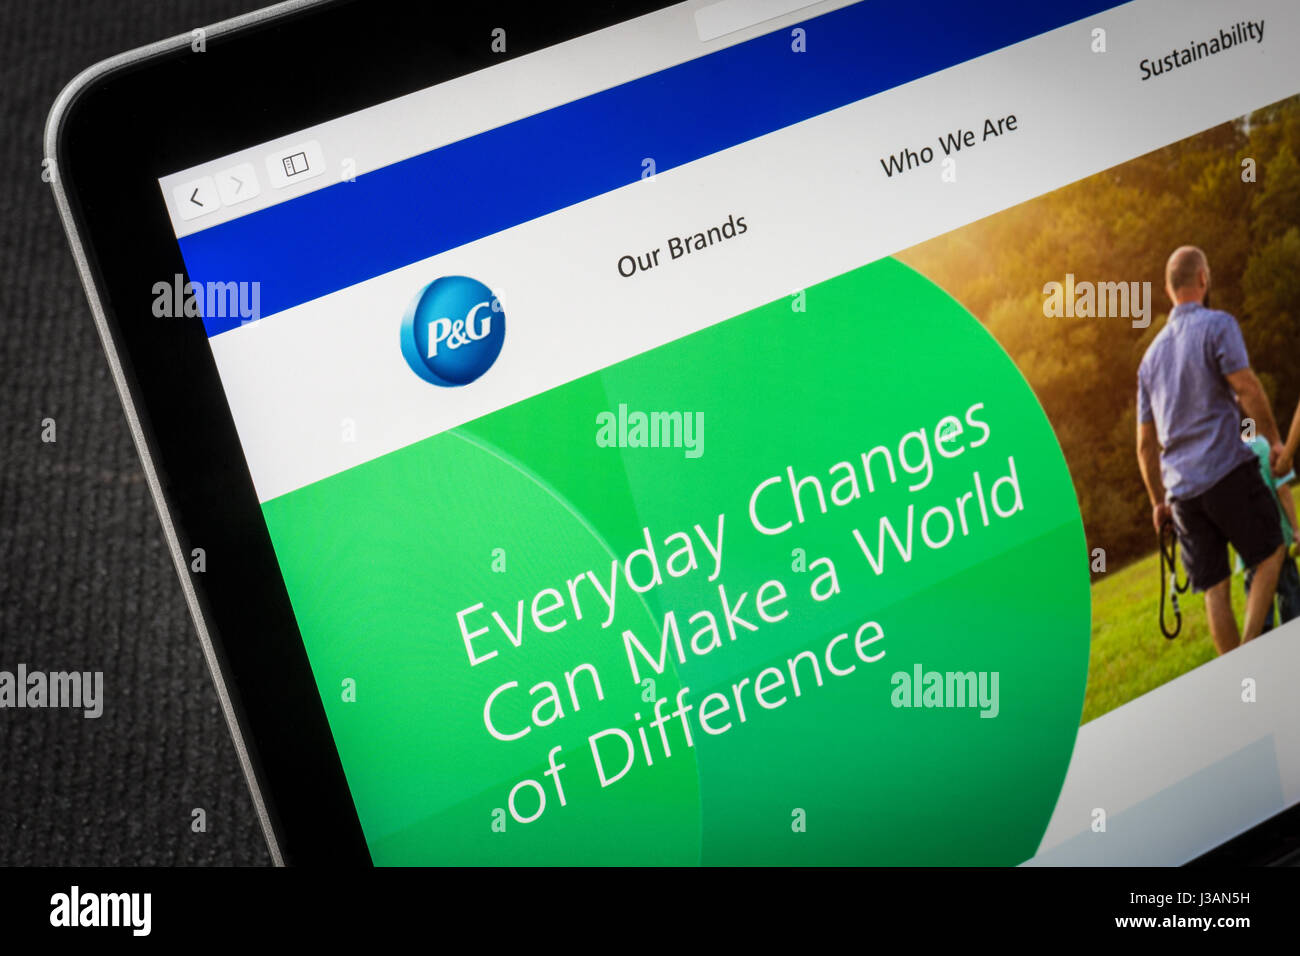 P&G Procter and Gamble website - Stock Image